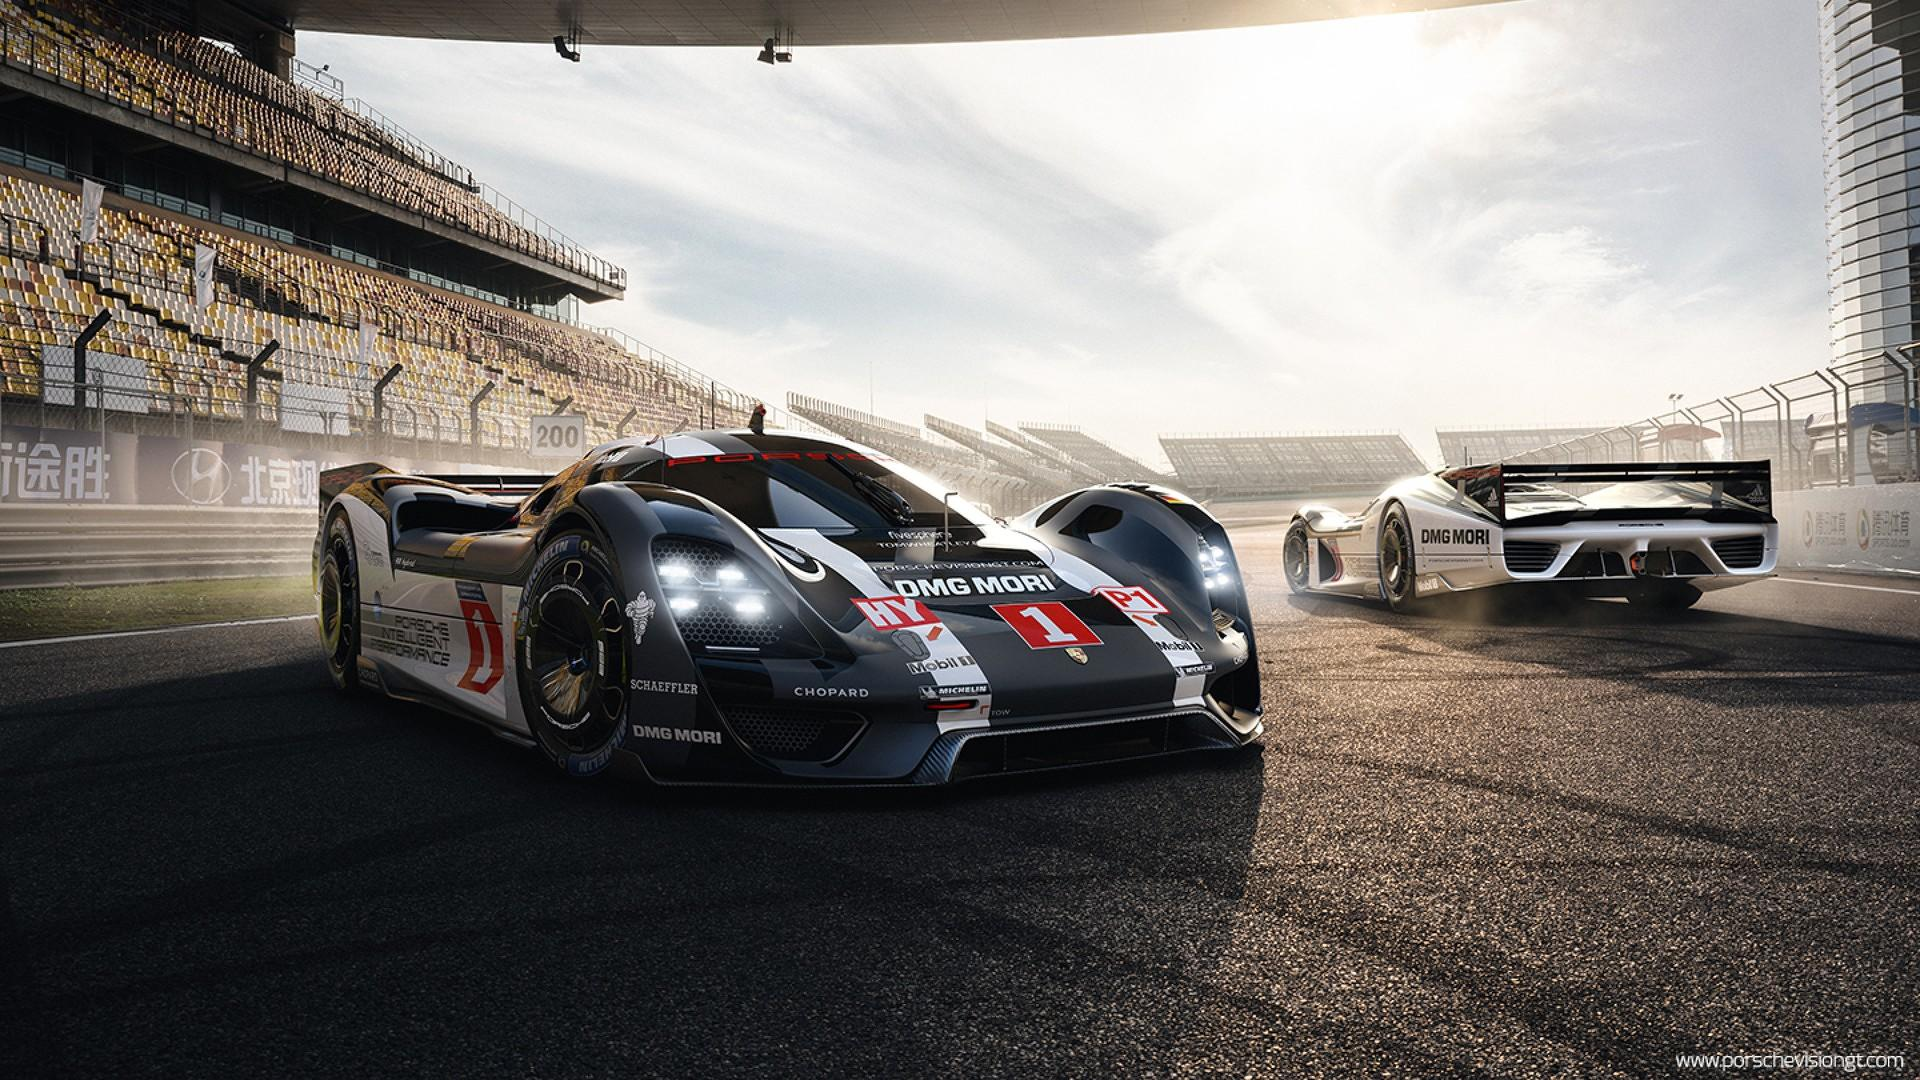 Race Cars For Sale >> Porsche 908 Long Tail Race Car Superbly Brought Back To Life